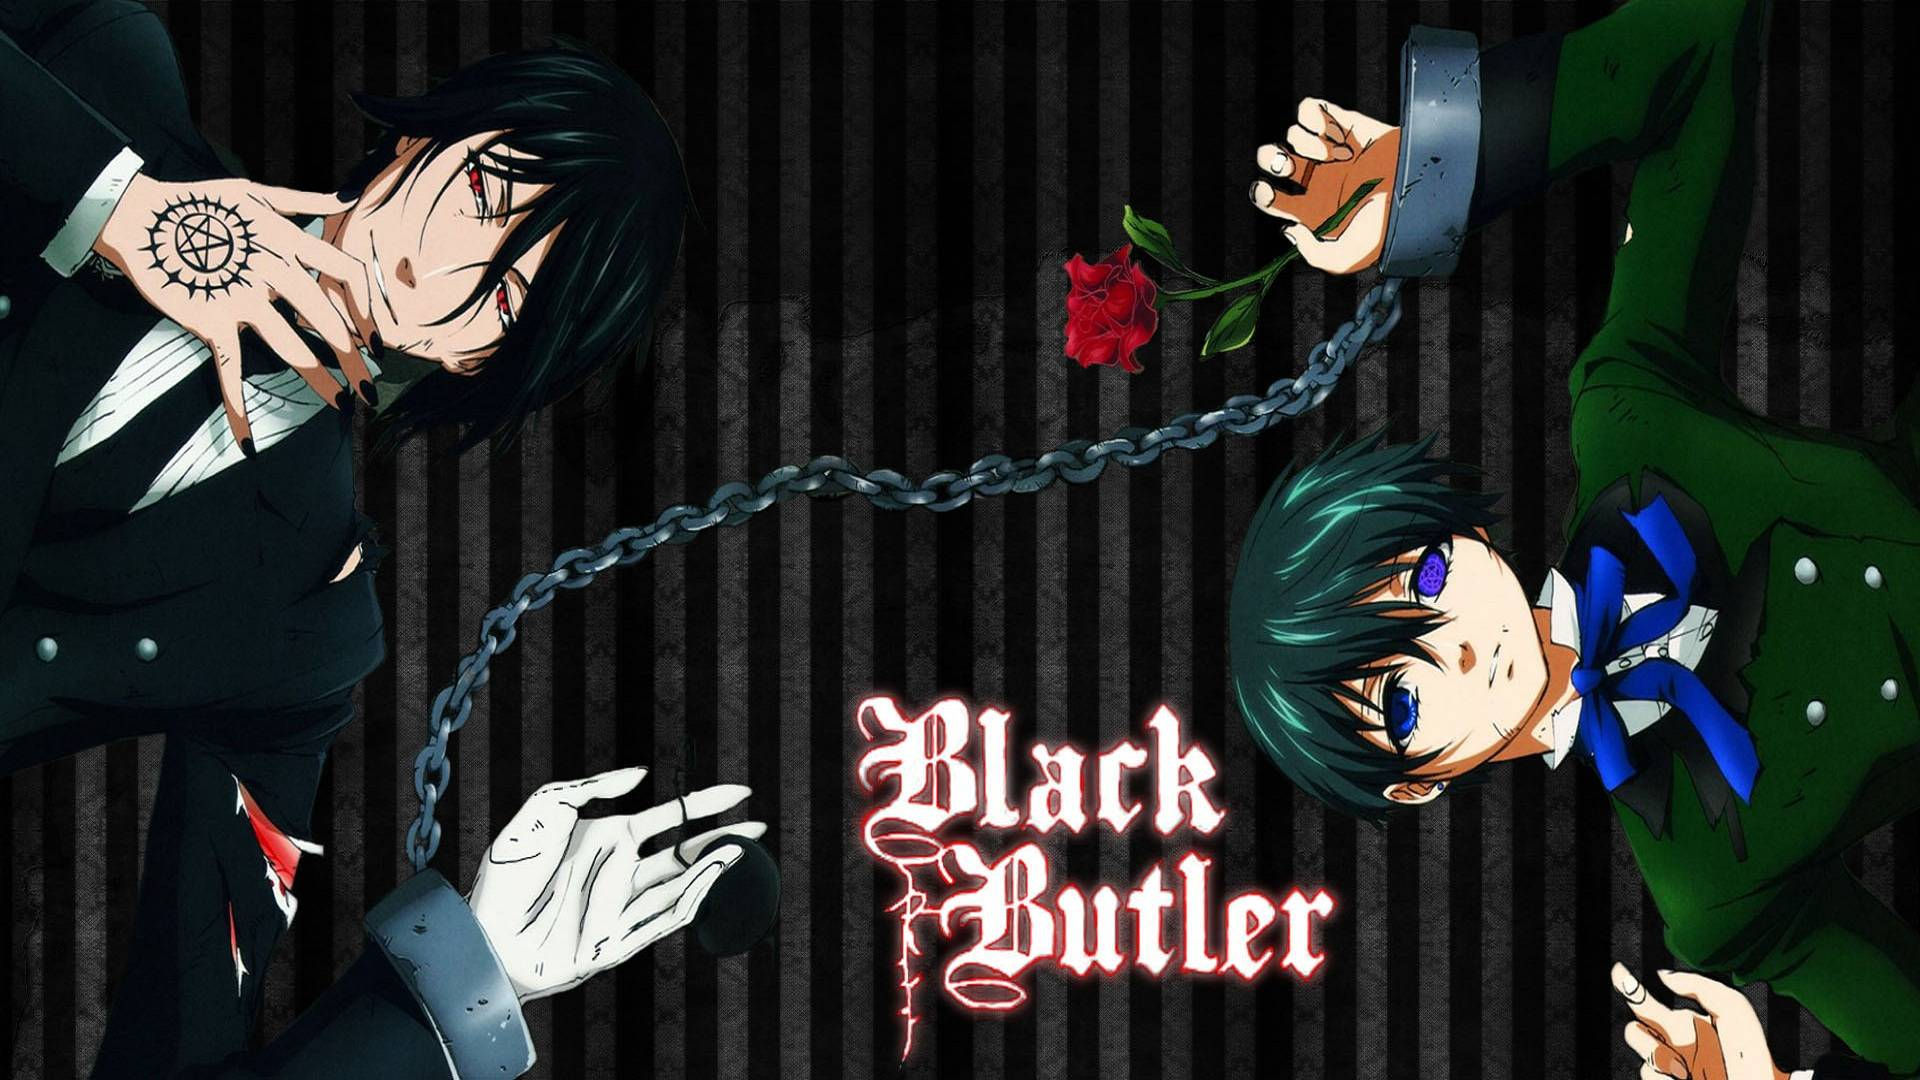 Black Butler HD Desktop Wallpapers